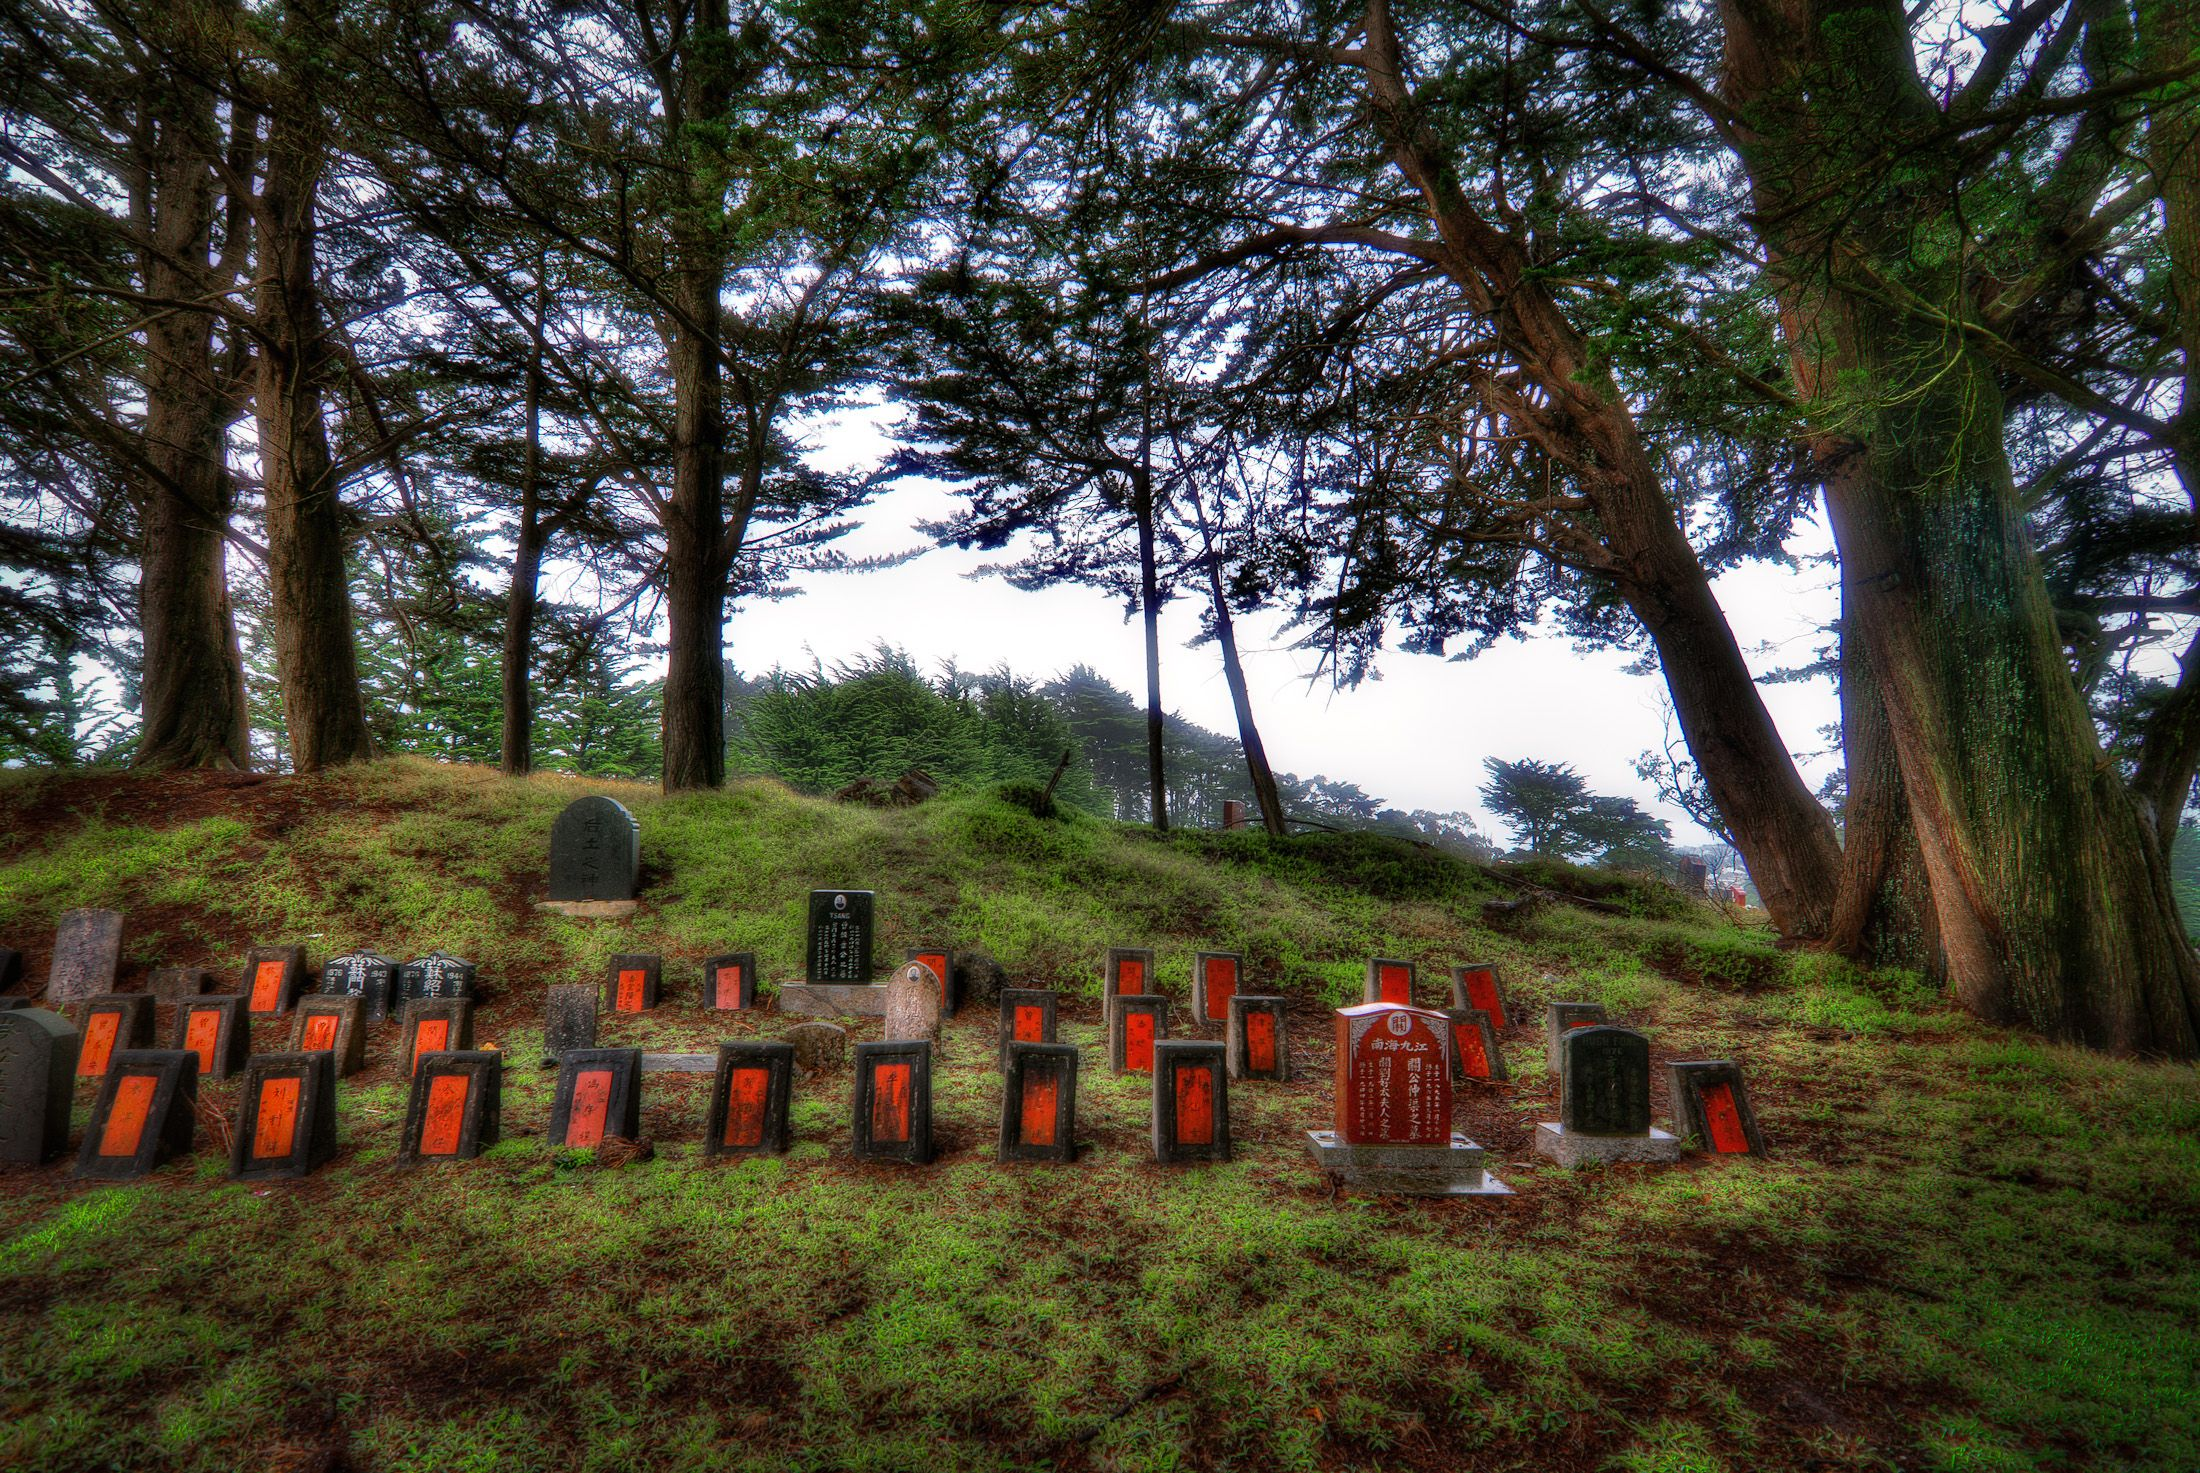 colma chinese cemetery - Google Search